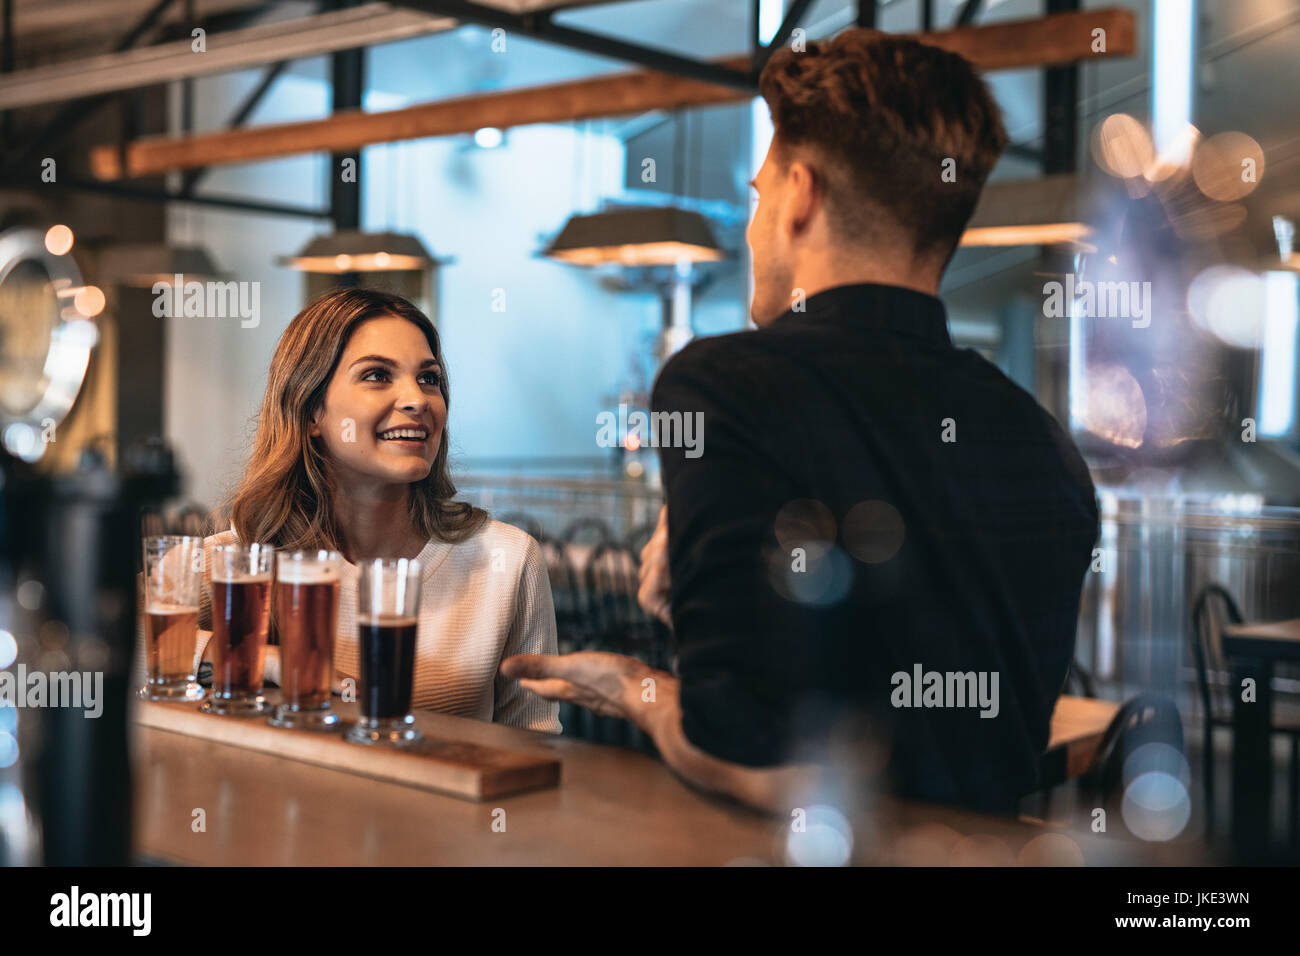 Young couple at bar with different craft beers on a wooden table. Man and woman talking at the bar counter. - Stock Image